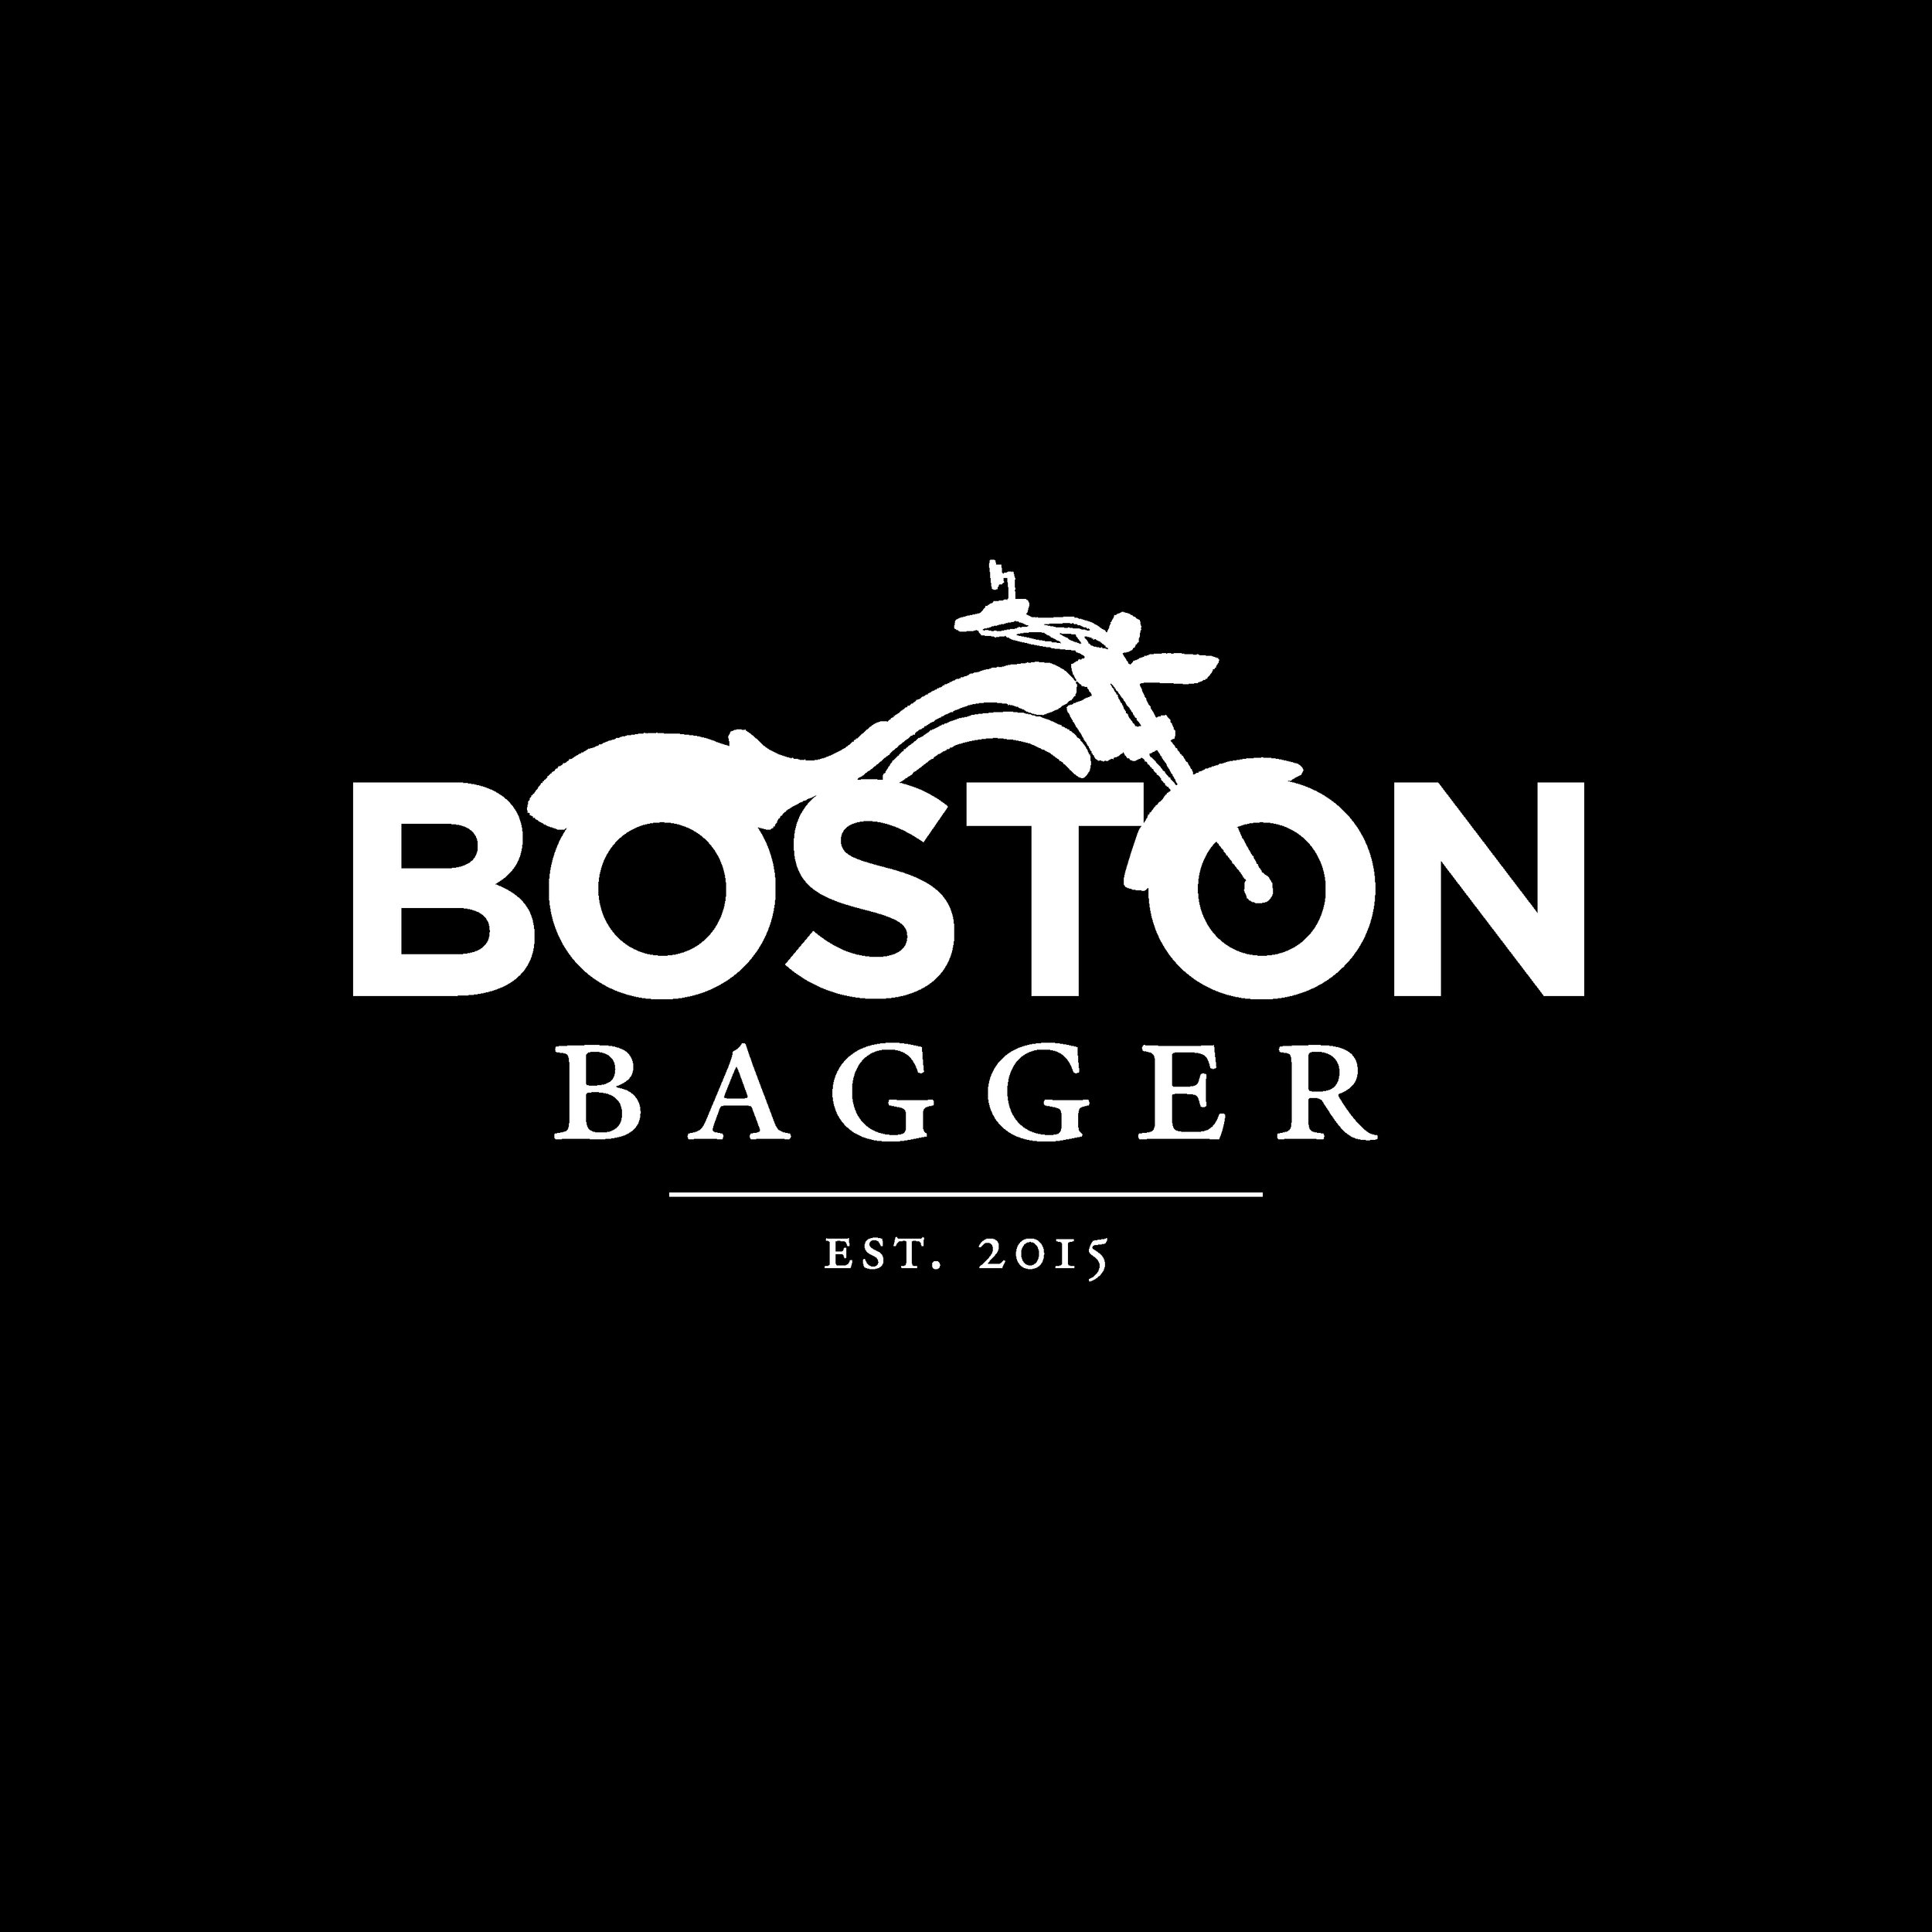 Boston Bagger logo-04.jpg